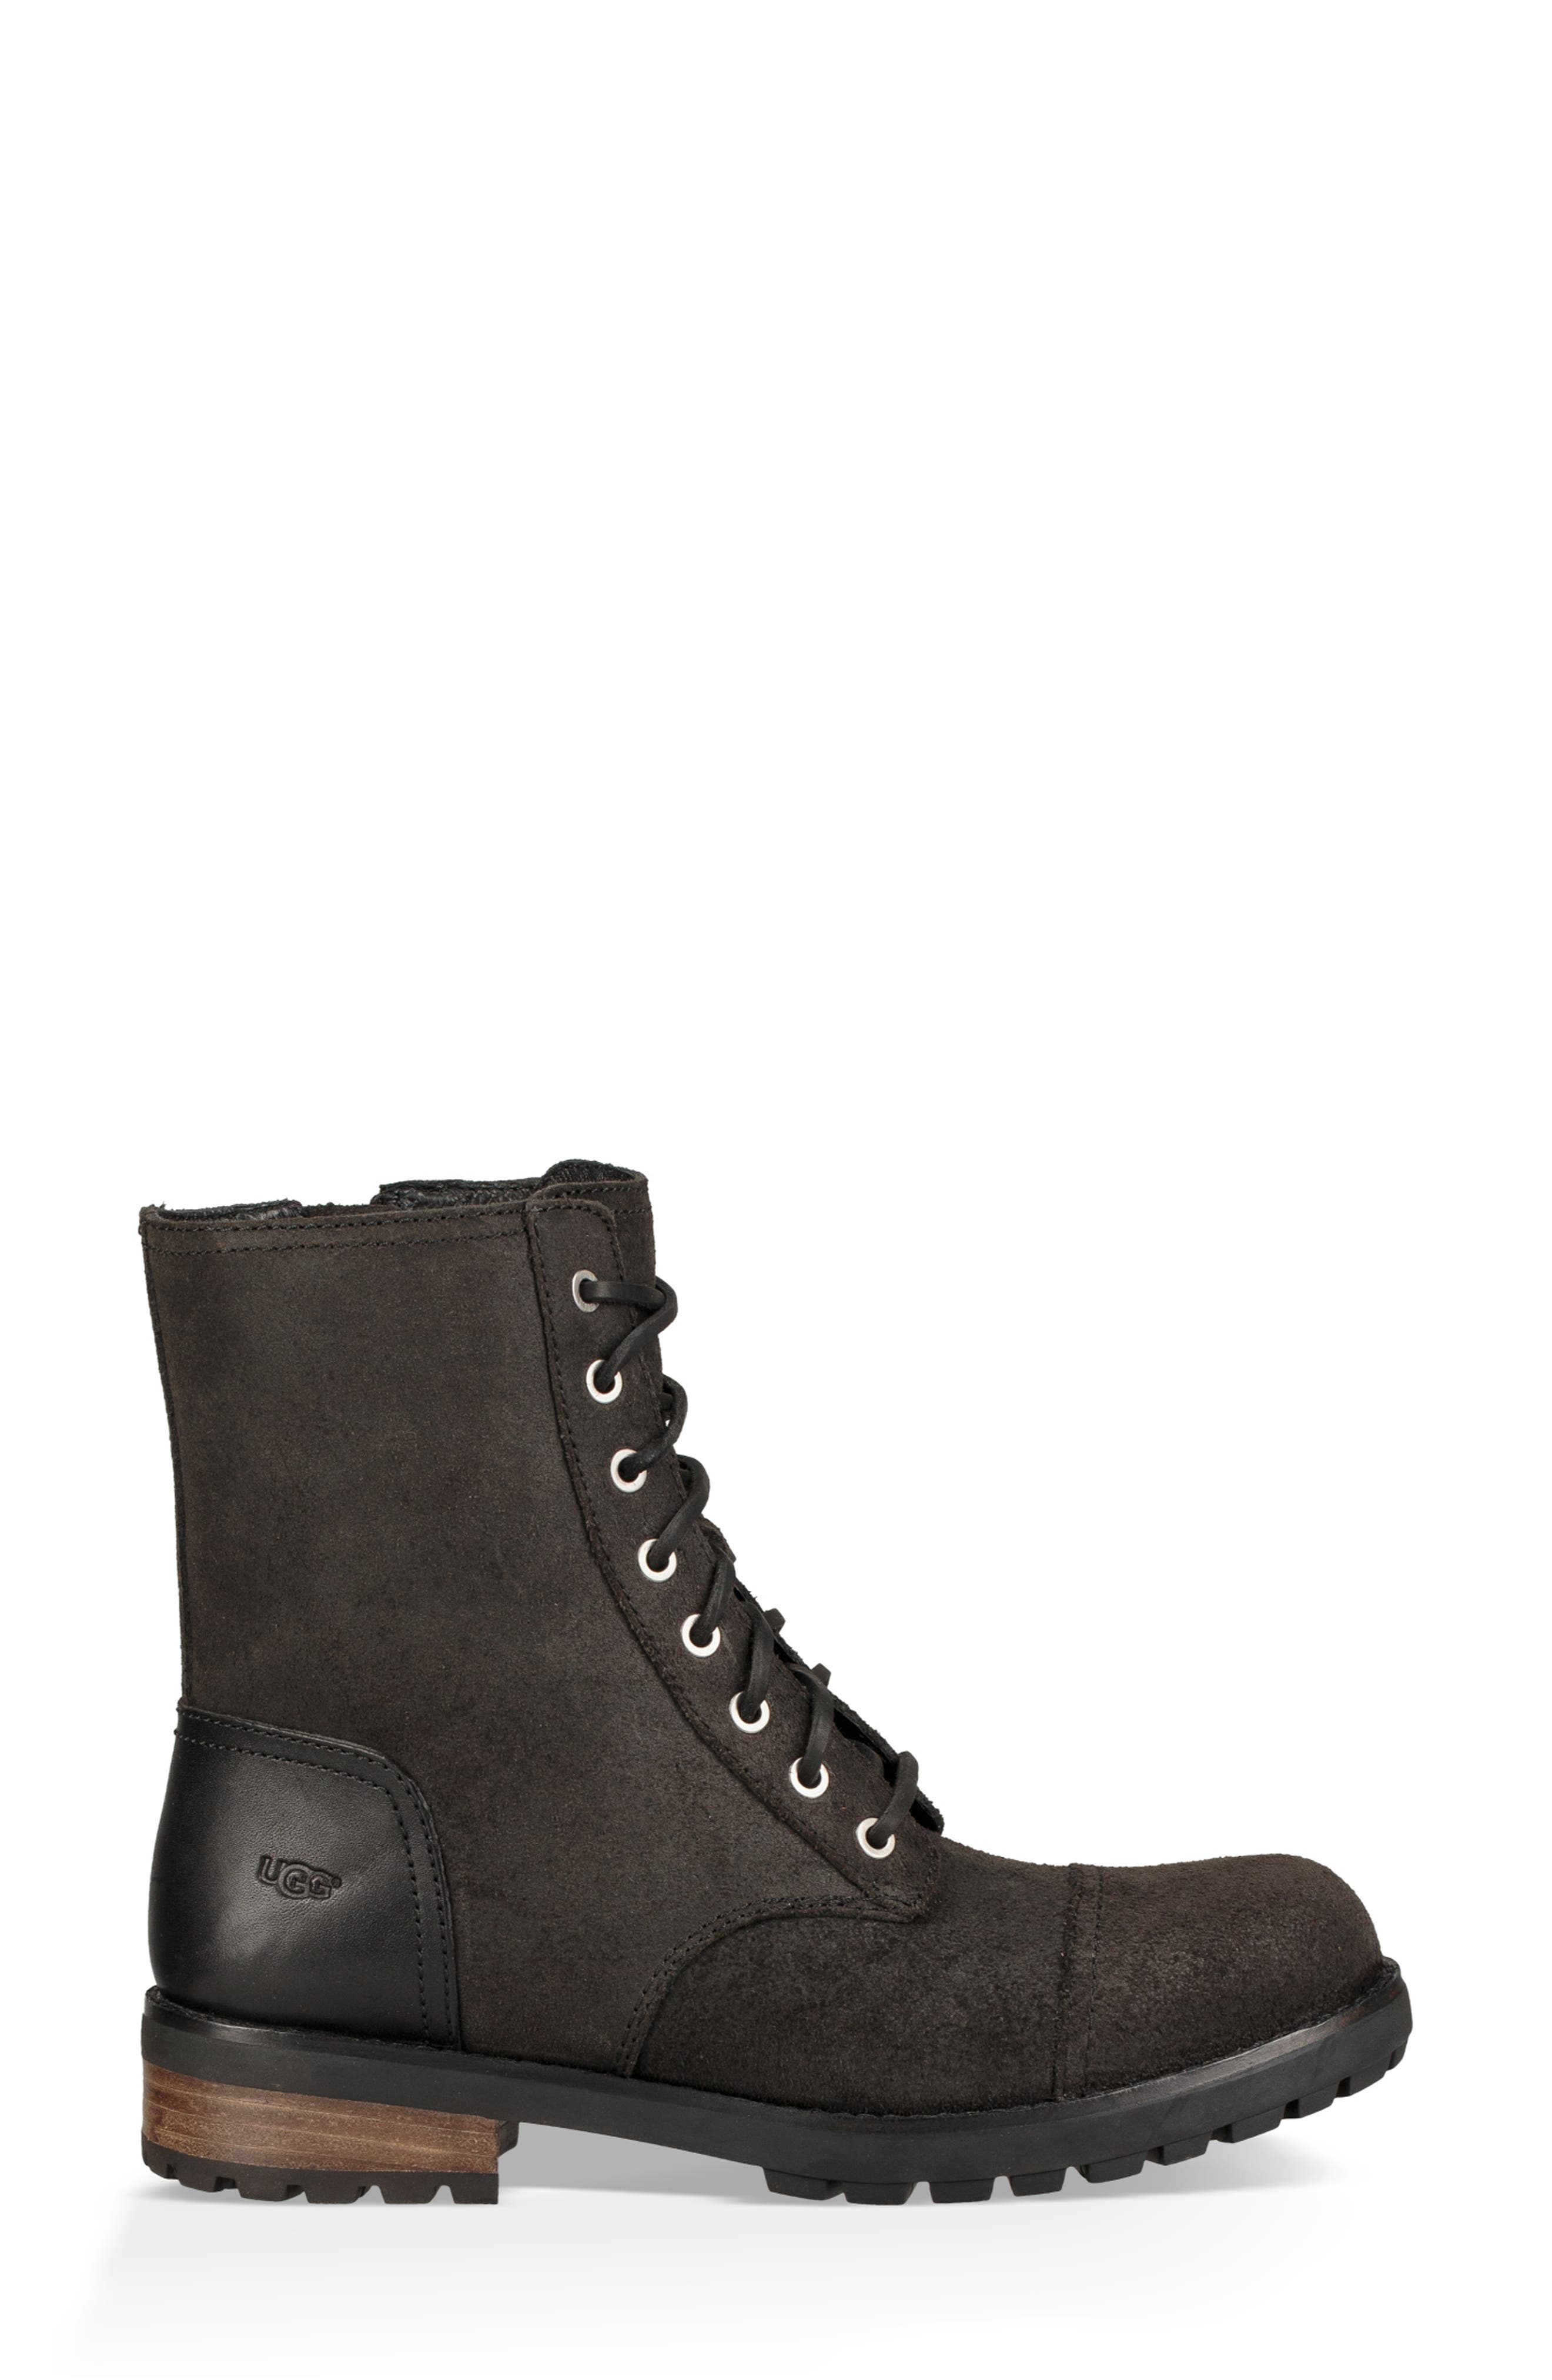 Kilmer II Genuine Shearling Lined Water Resistant Bootie,                             Alternate thumbnail 3, color,                             BLACK LEATHER